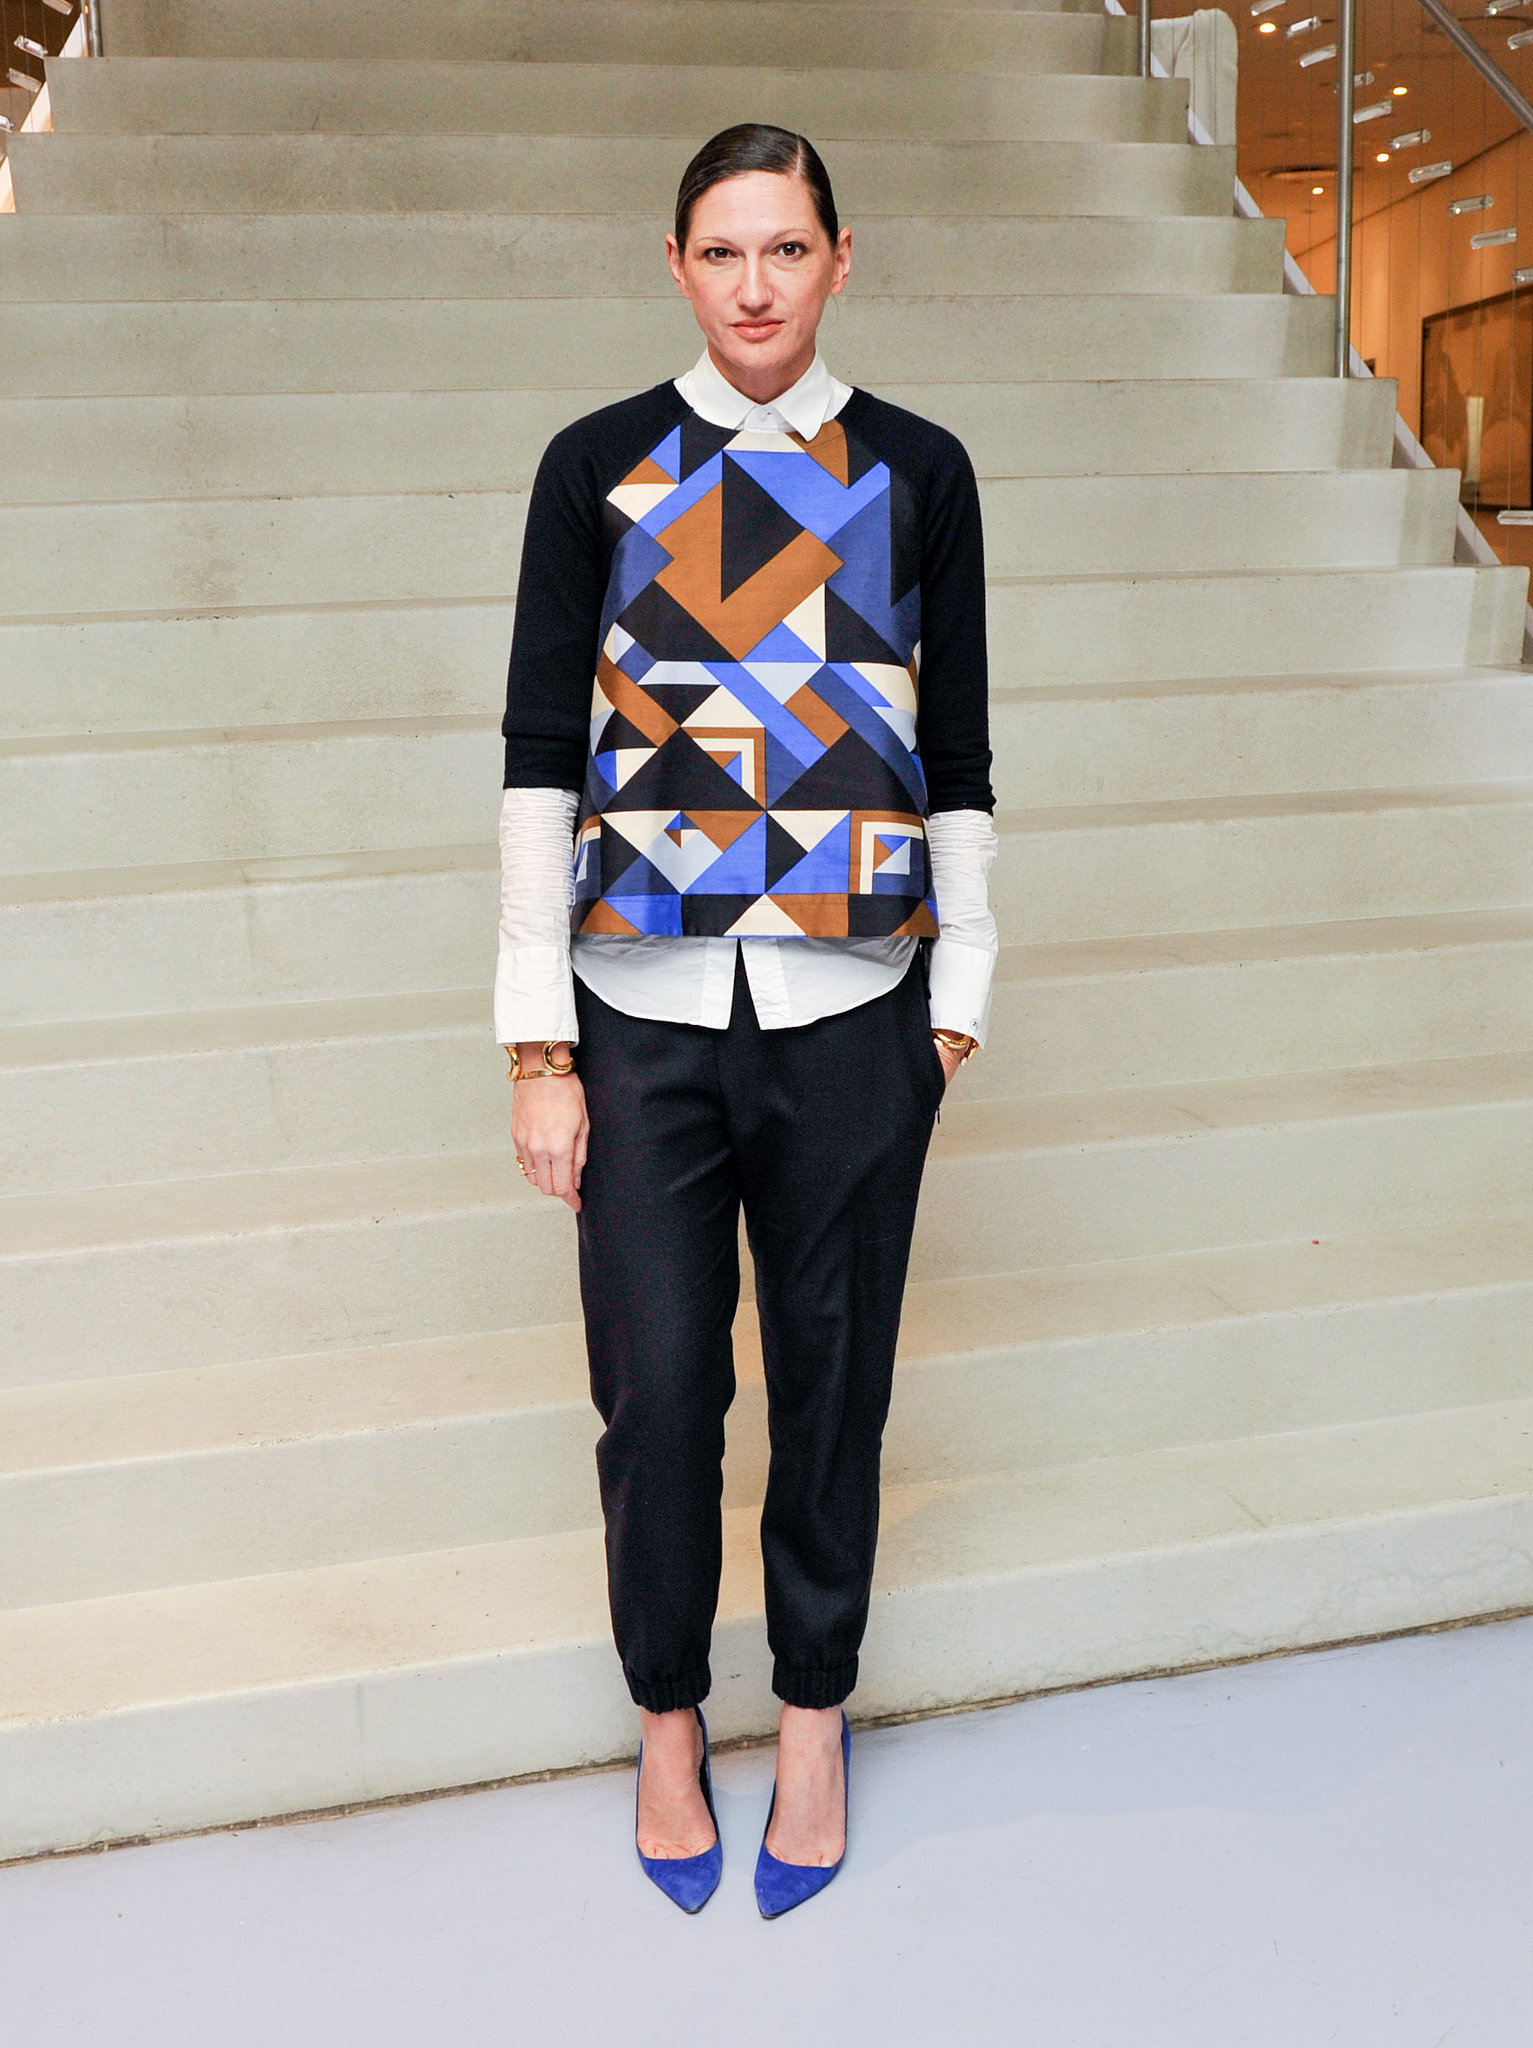 We love that she routinely skips the cocktail dress in favor of an outfit like this combo of black slacks, cobalt pumps, and a geometric print top worn over a button-up shirt.